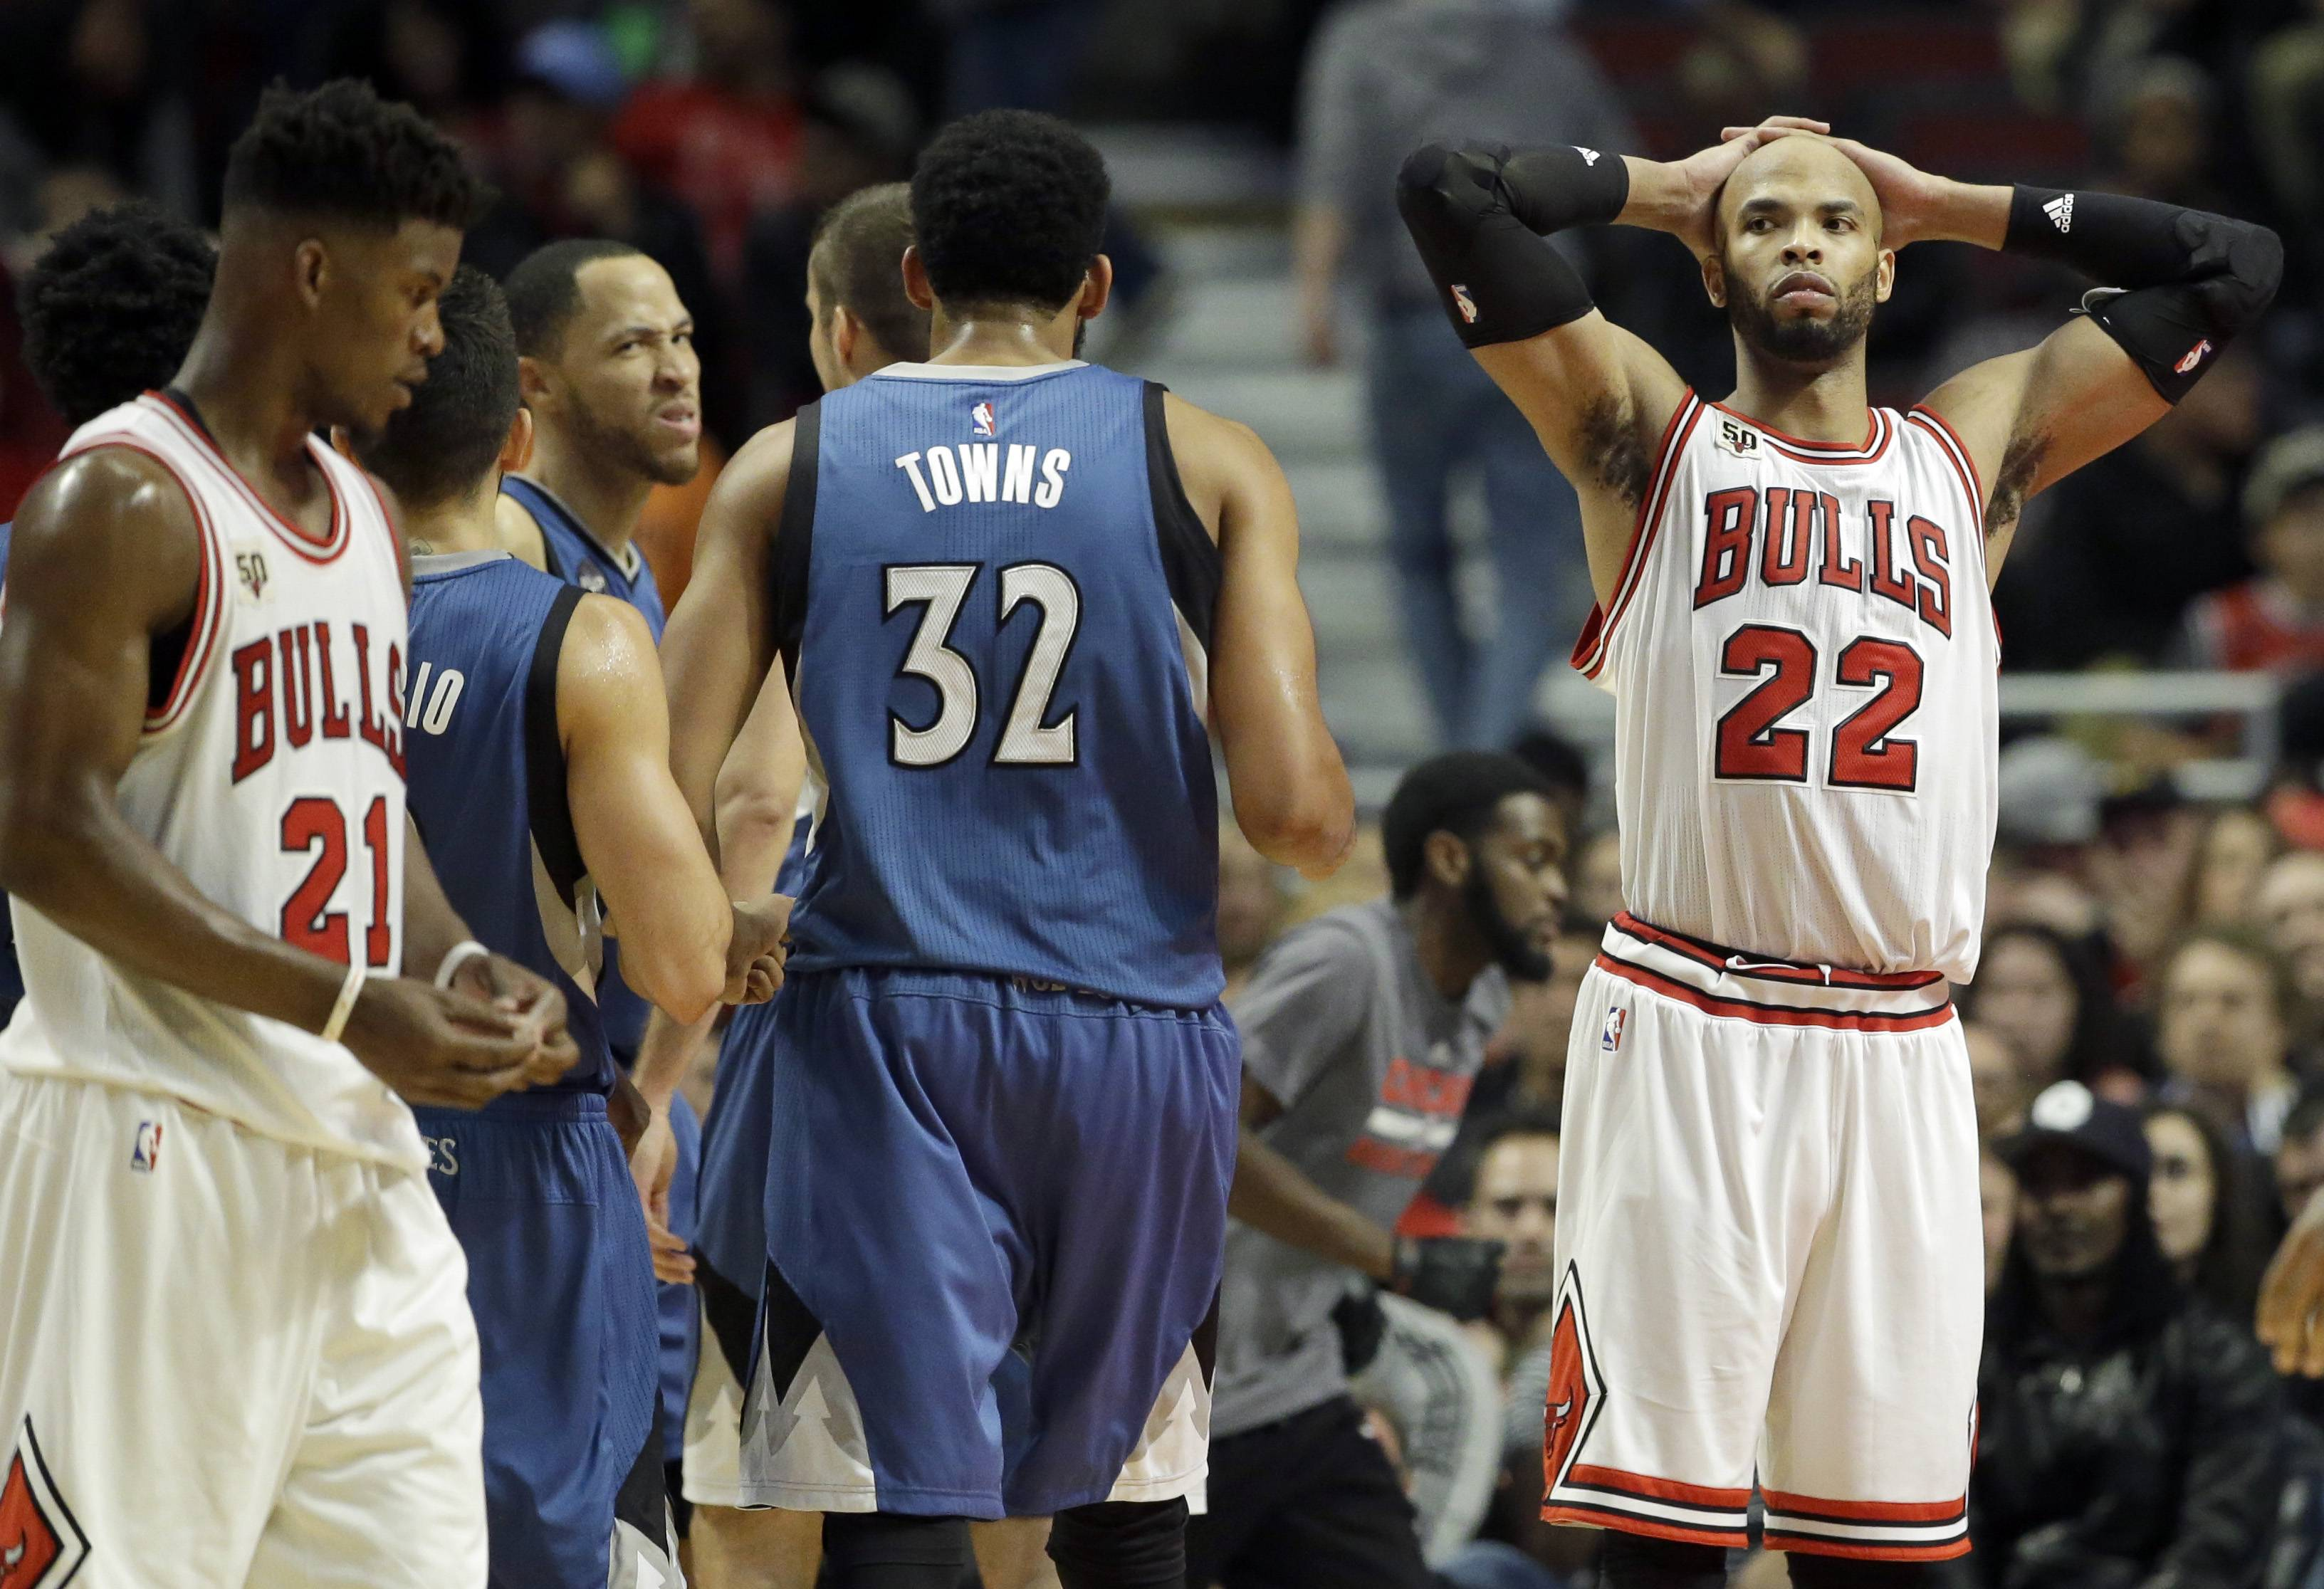 Chicago Bulls forward Taj Gibson (22) reacts as he looks to guard/forward Jimmy Butler (21) after Butler fouled Minnesota Timberwolves forward Tayshaun Prince during overtime Saturday night. The Bulls were shut out in OT and the Timberwolves won 102-93.